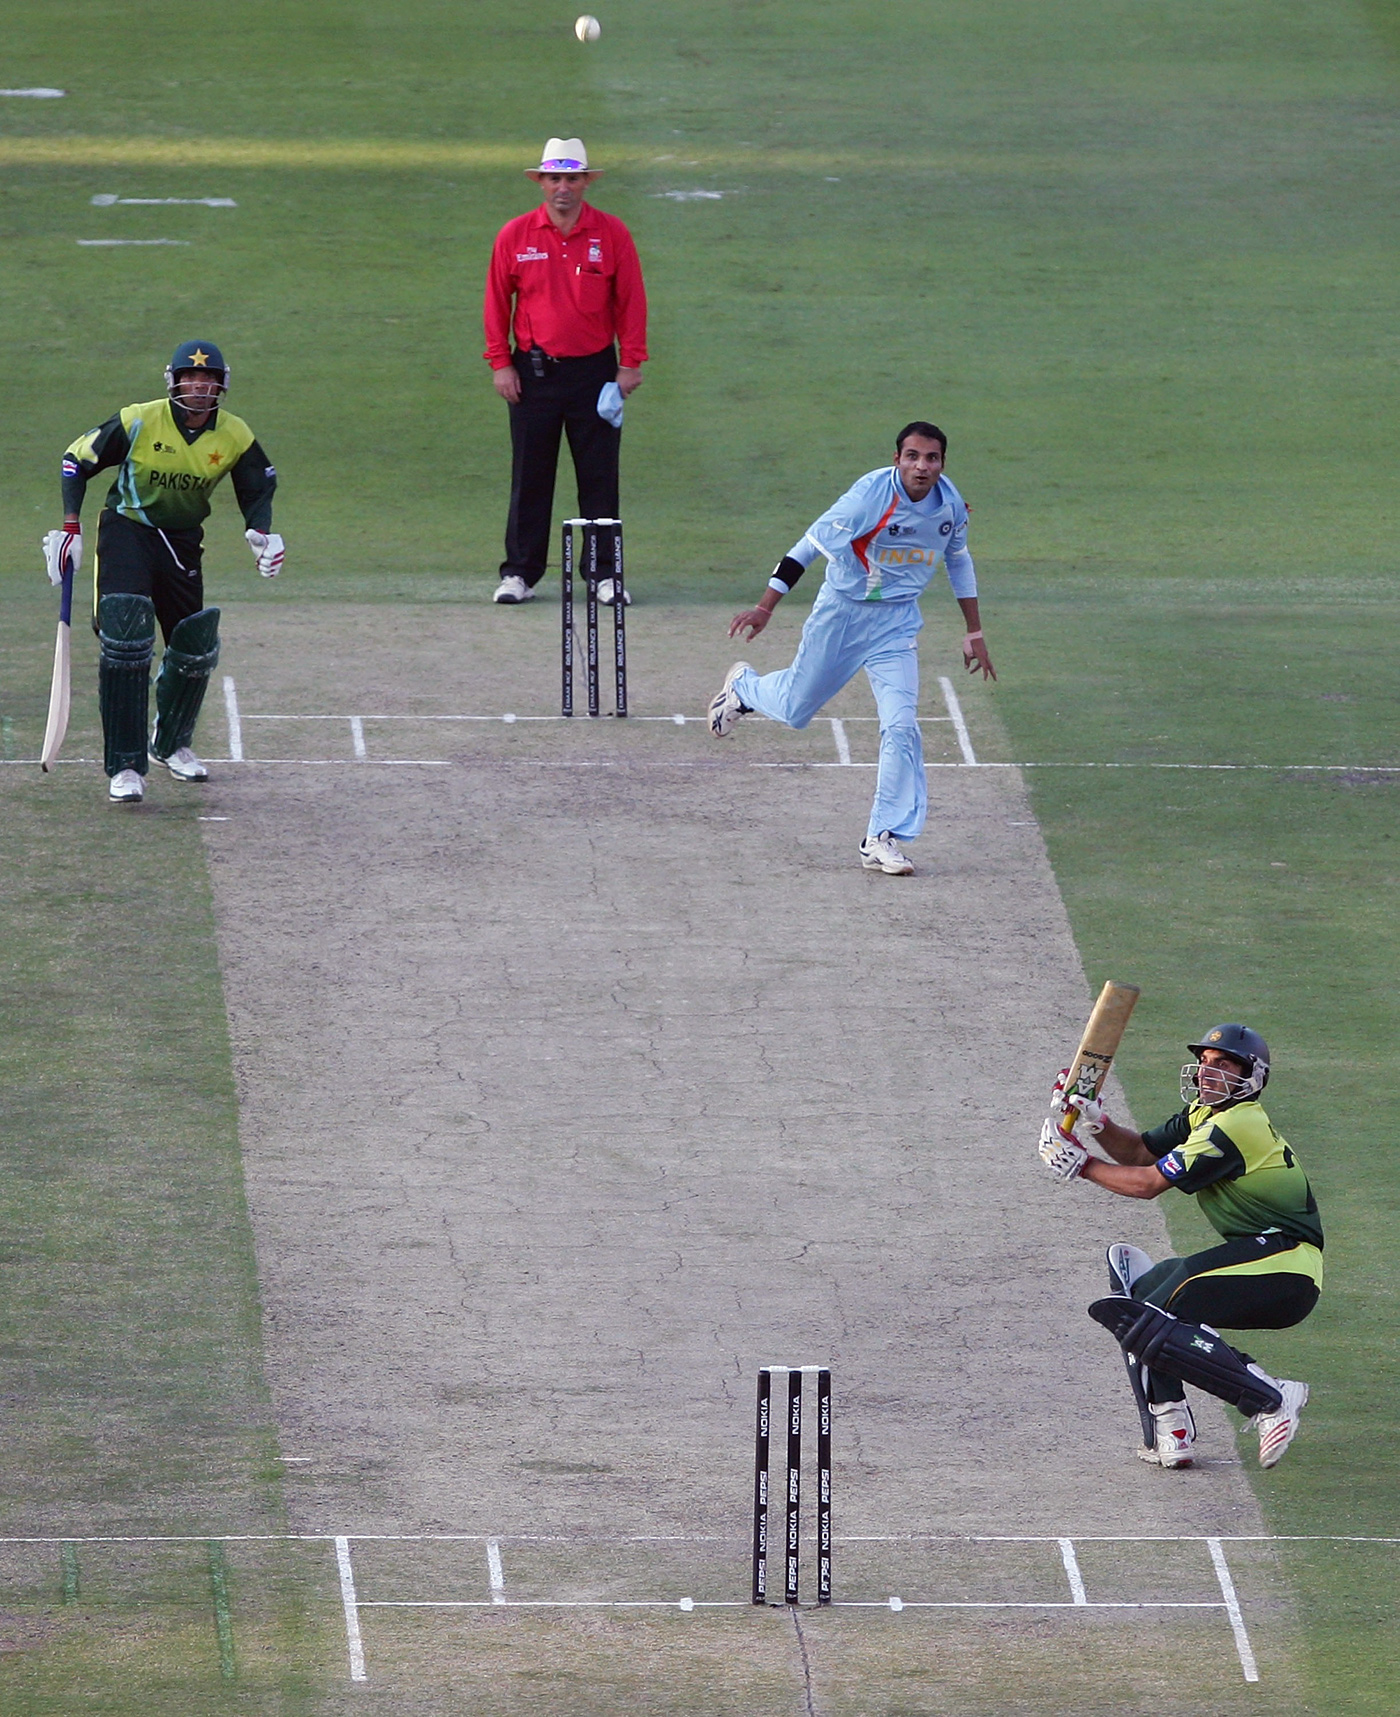 That fateful scoop - Misbah-ul-Haq scoops Joginder Sharma off what was the final ball of the match, India v Pakistan, ICC World Twenty20 final, Johannesburg, September 24, 2007